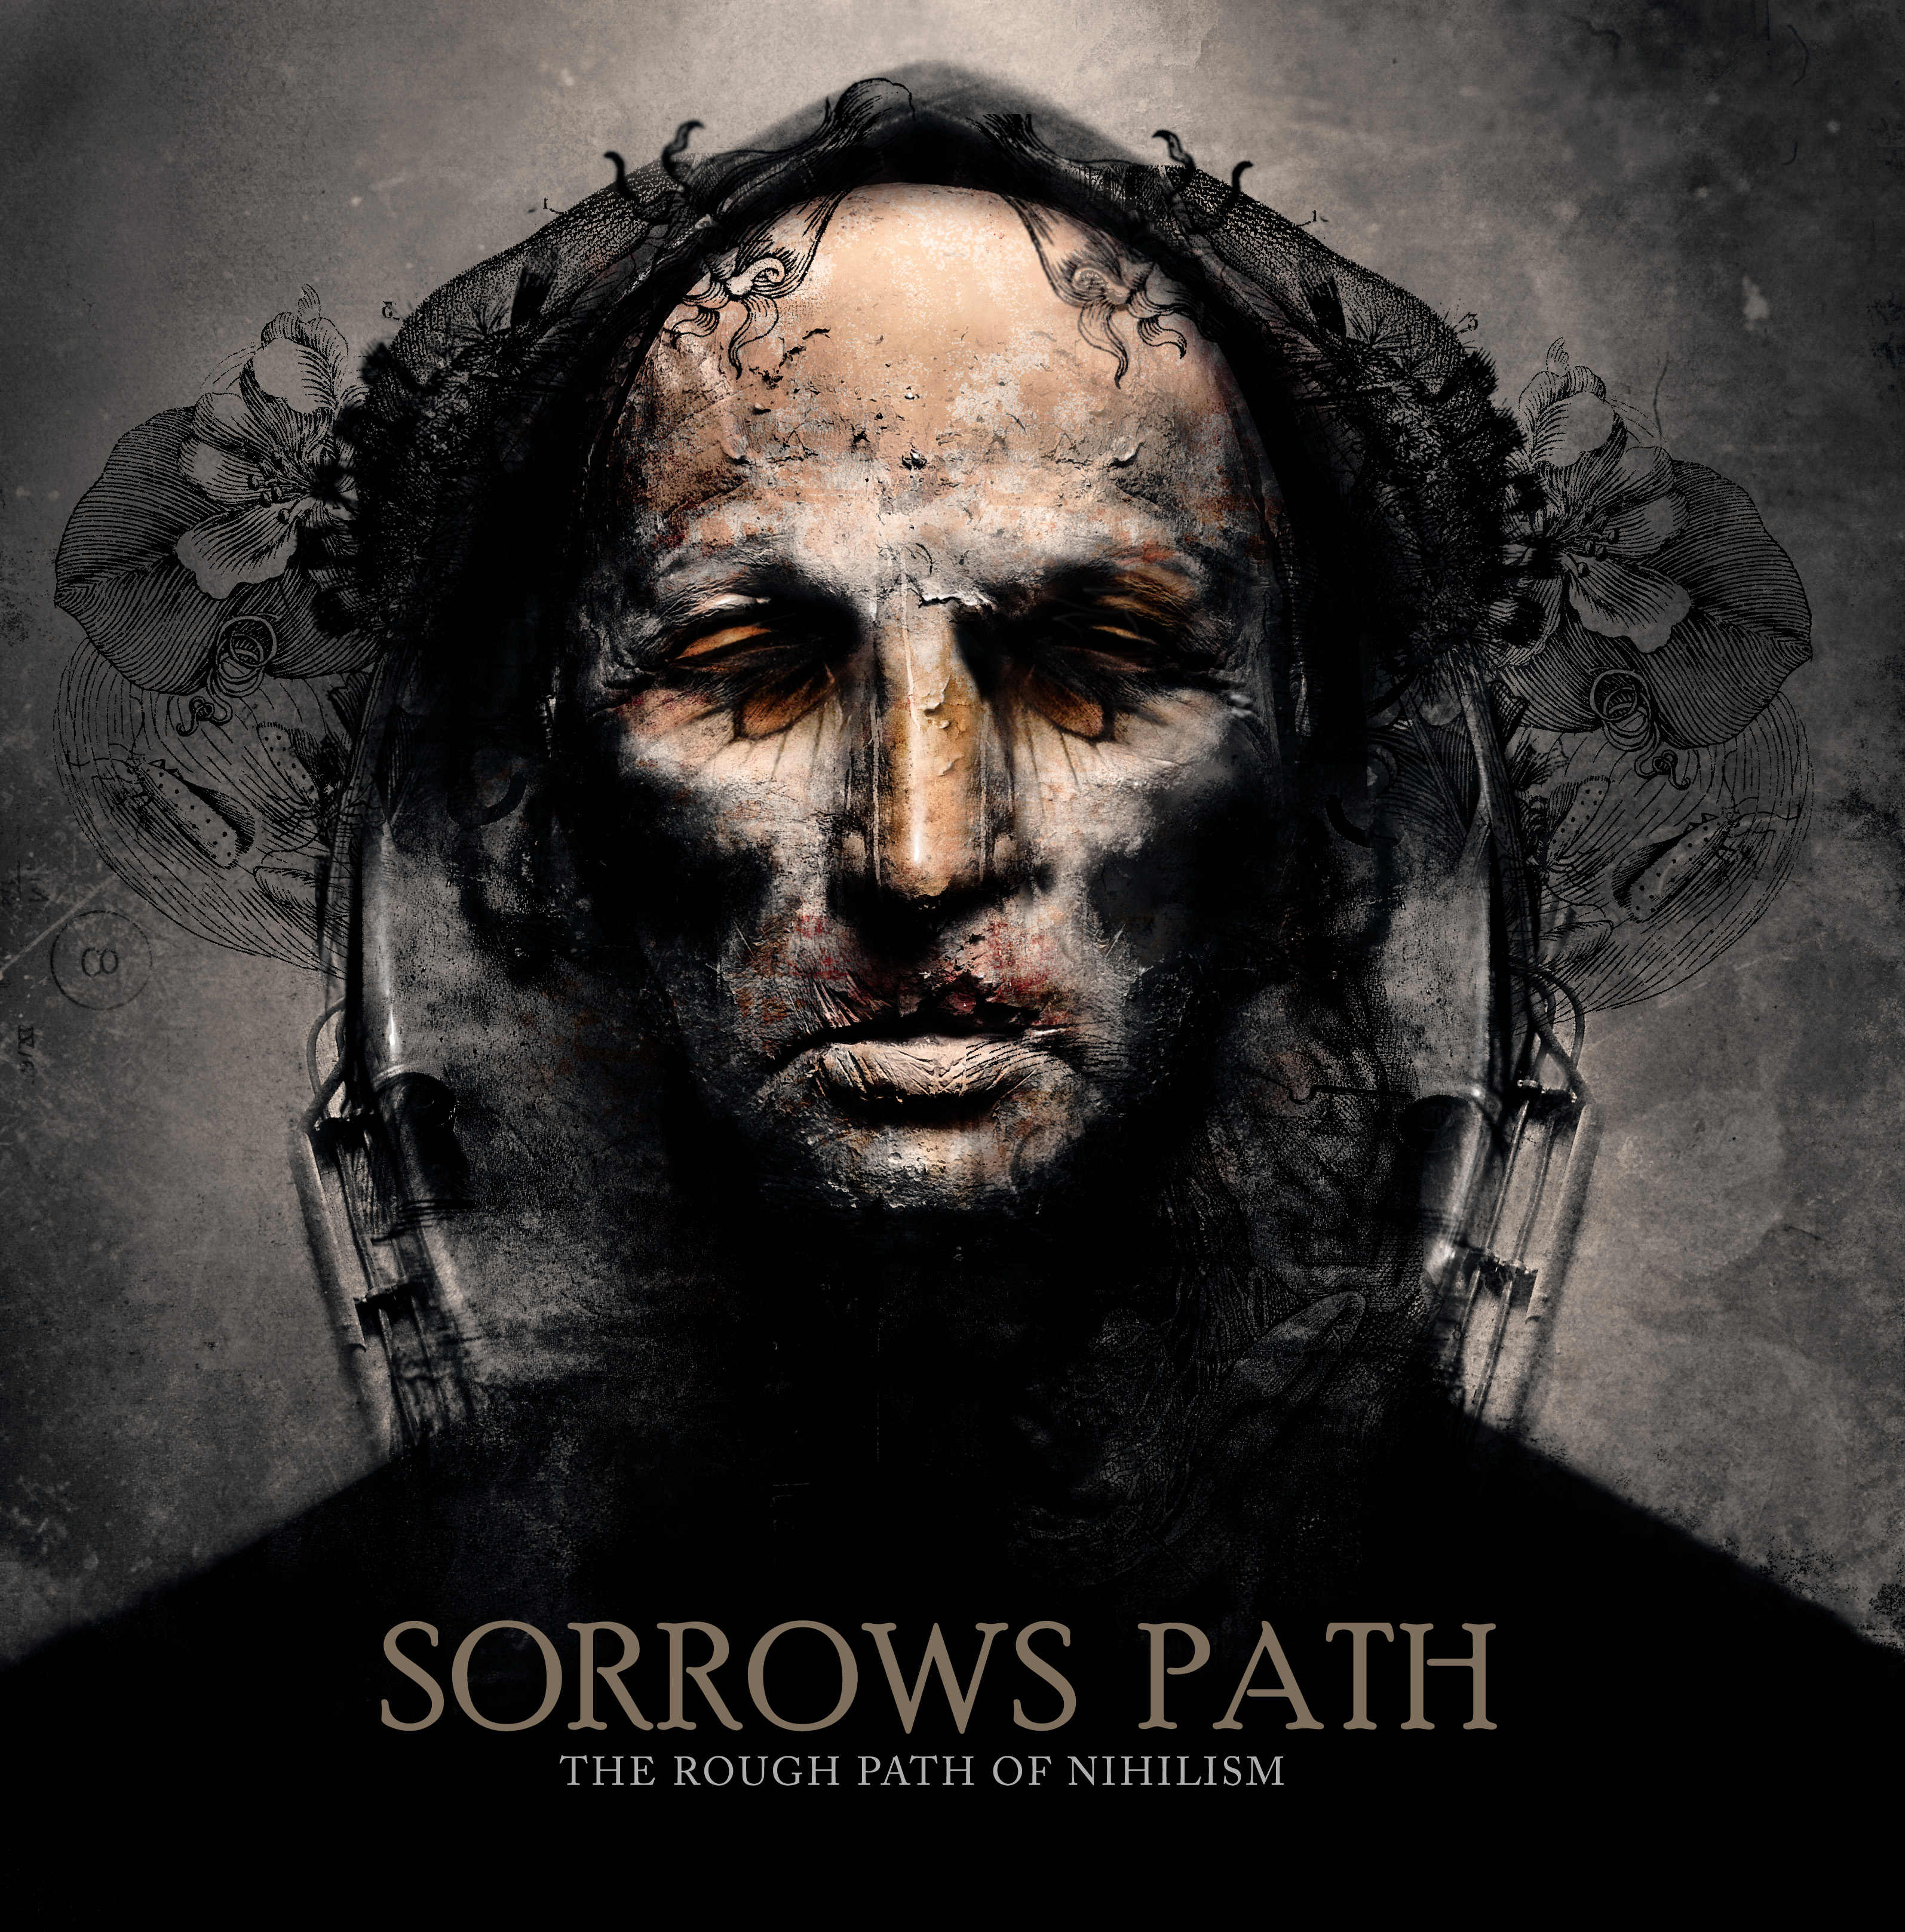 SORROWS PATH (Gre) – The Rough Path of Nihilism, 2010